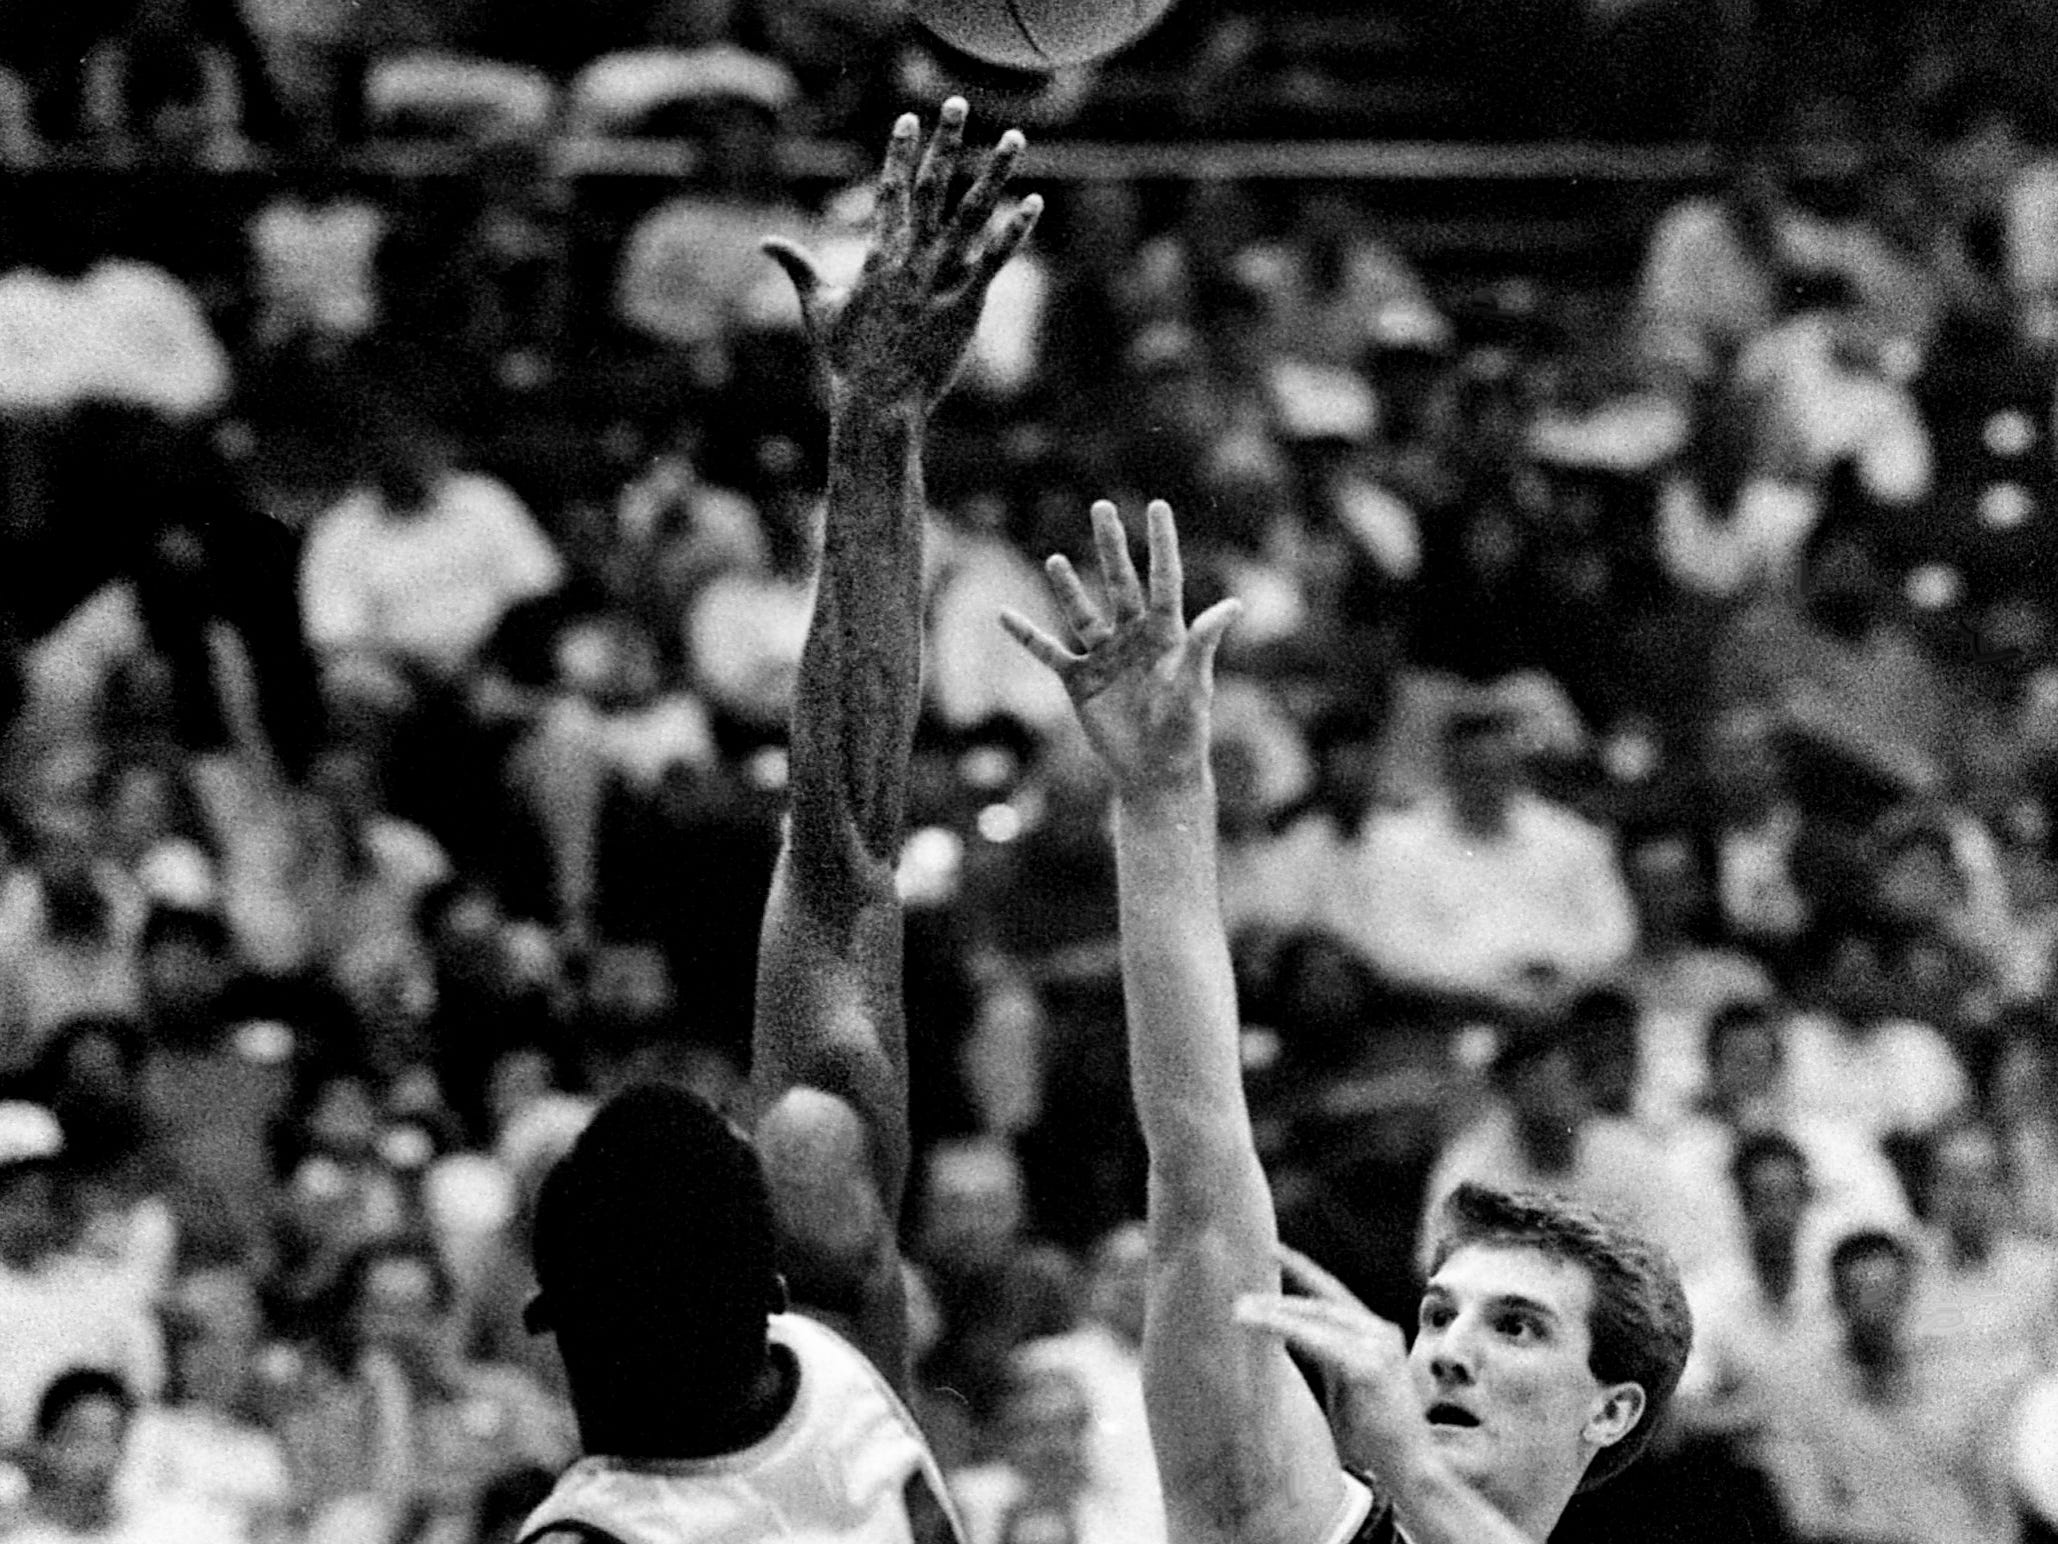 Franklin High senior guard Kevin Anglin (40) just gets his shot over the reach of Shelbyville High's Dewayne Fishback for two of his 19 points in Franklin's 53-51 victory the TSSAA Class AAA semifinal game at MTSU's Murphy Center in Murfreesboro March 17, 1989.